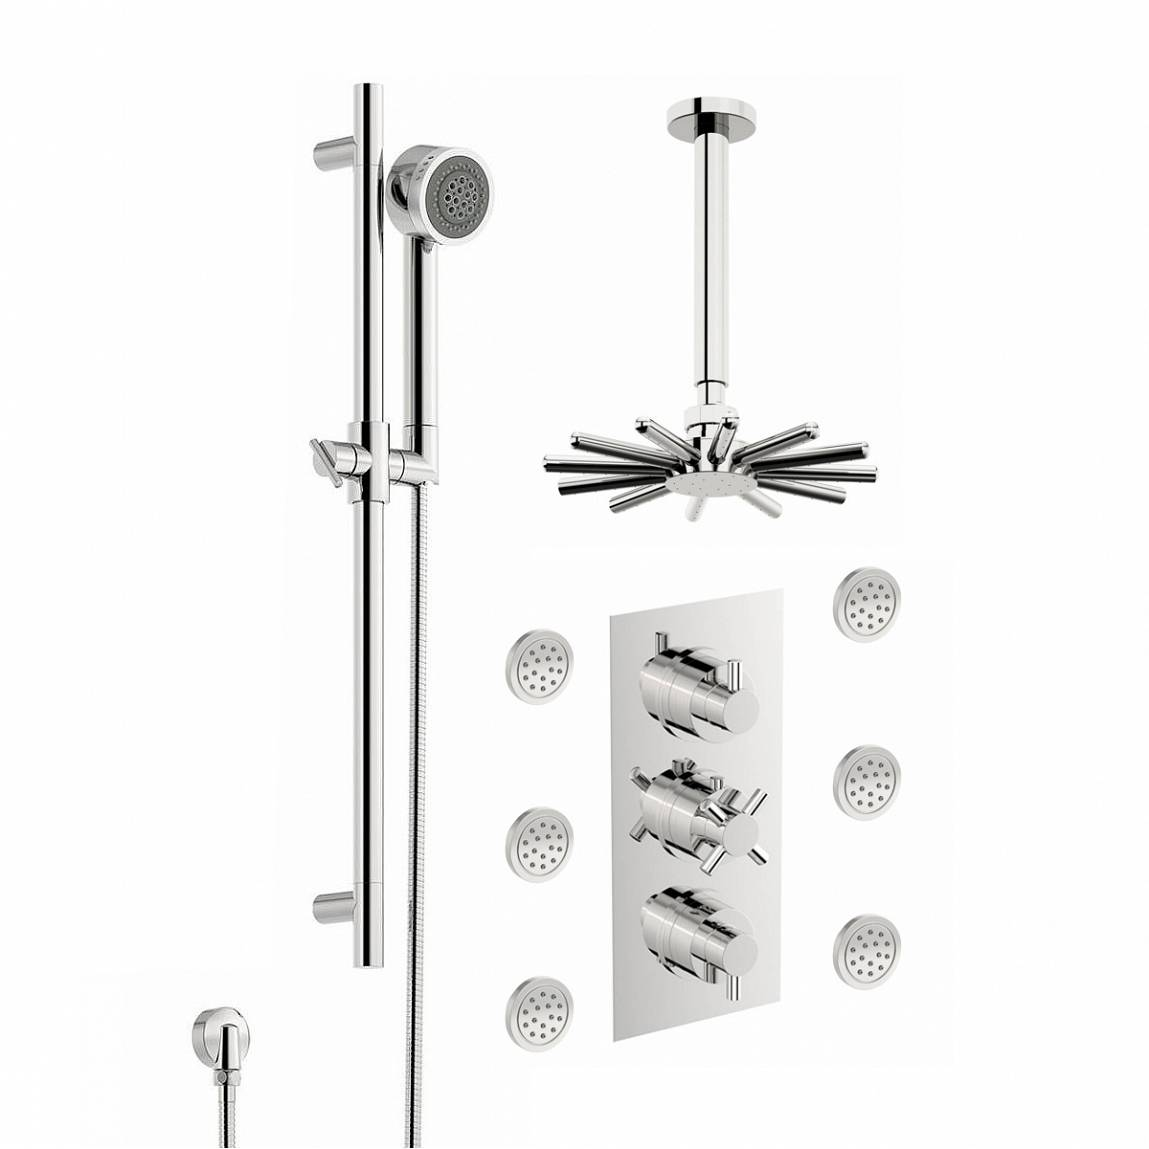 Image of Alexa Thermostatic Triple Diverter Valve, Body Jets & Shower Head Set